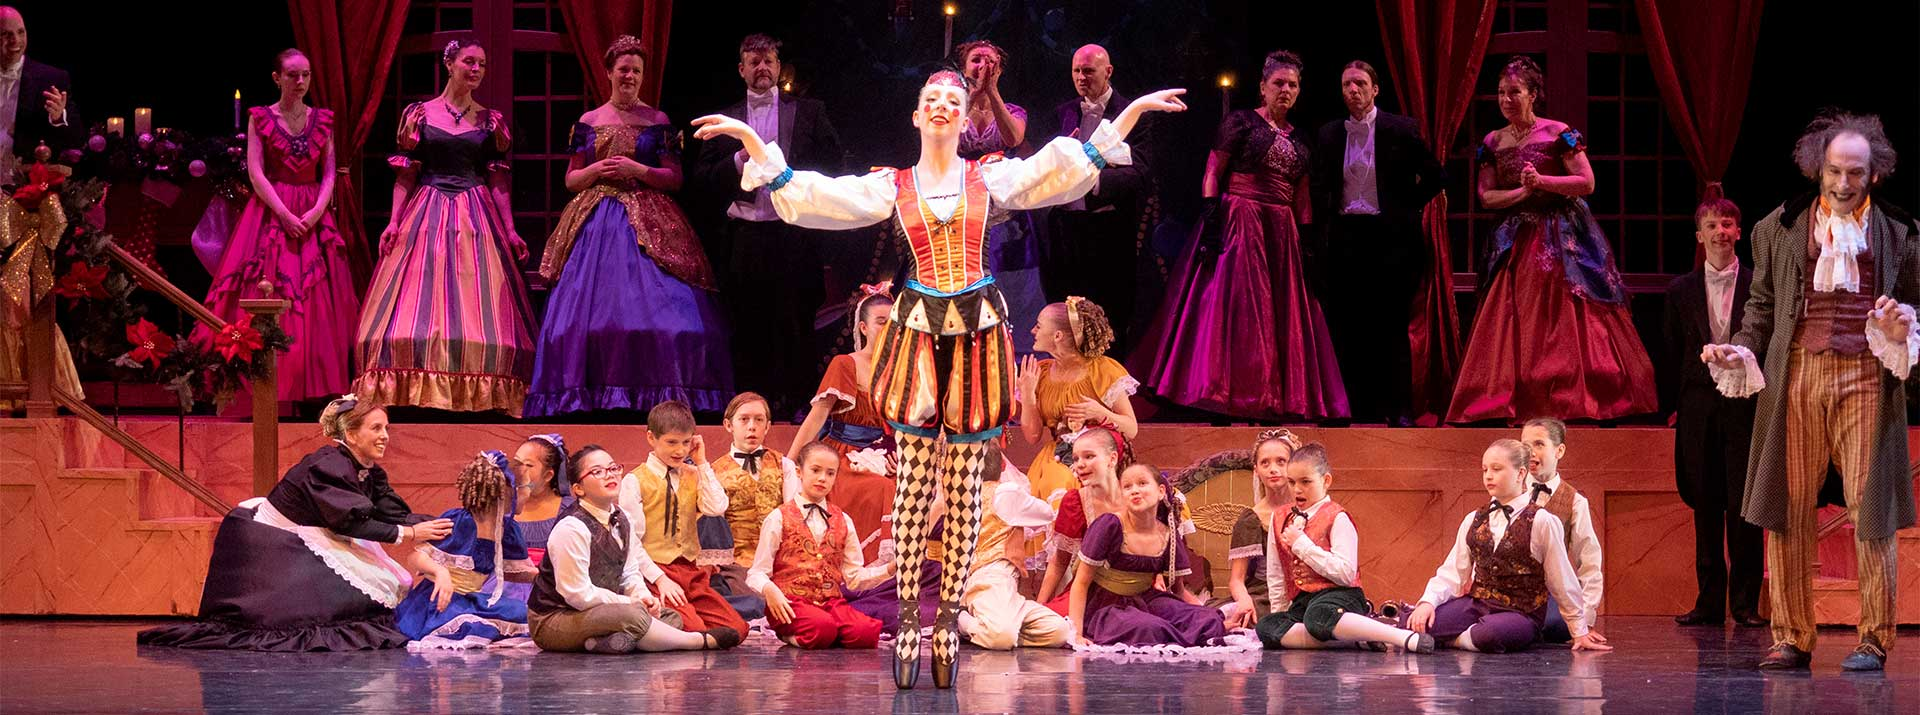 The Nutcracker from Garden city Ballet - dancers on stage